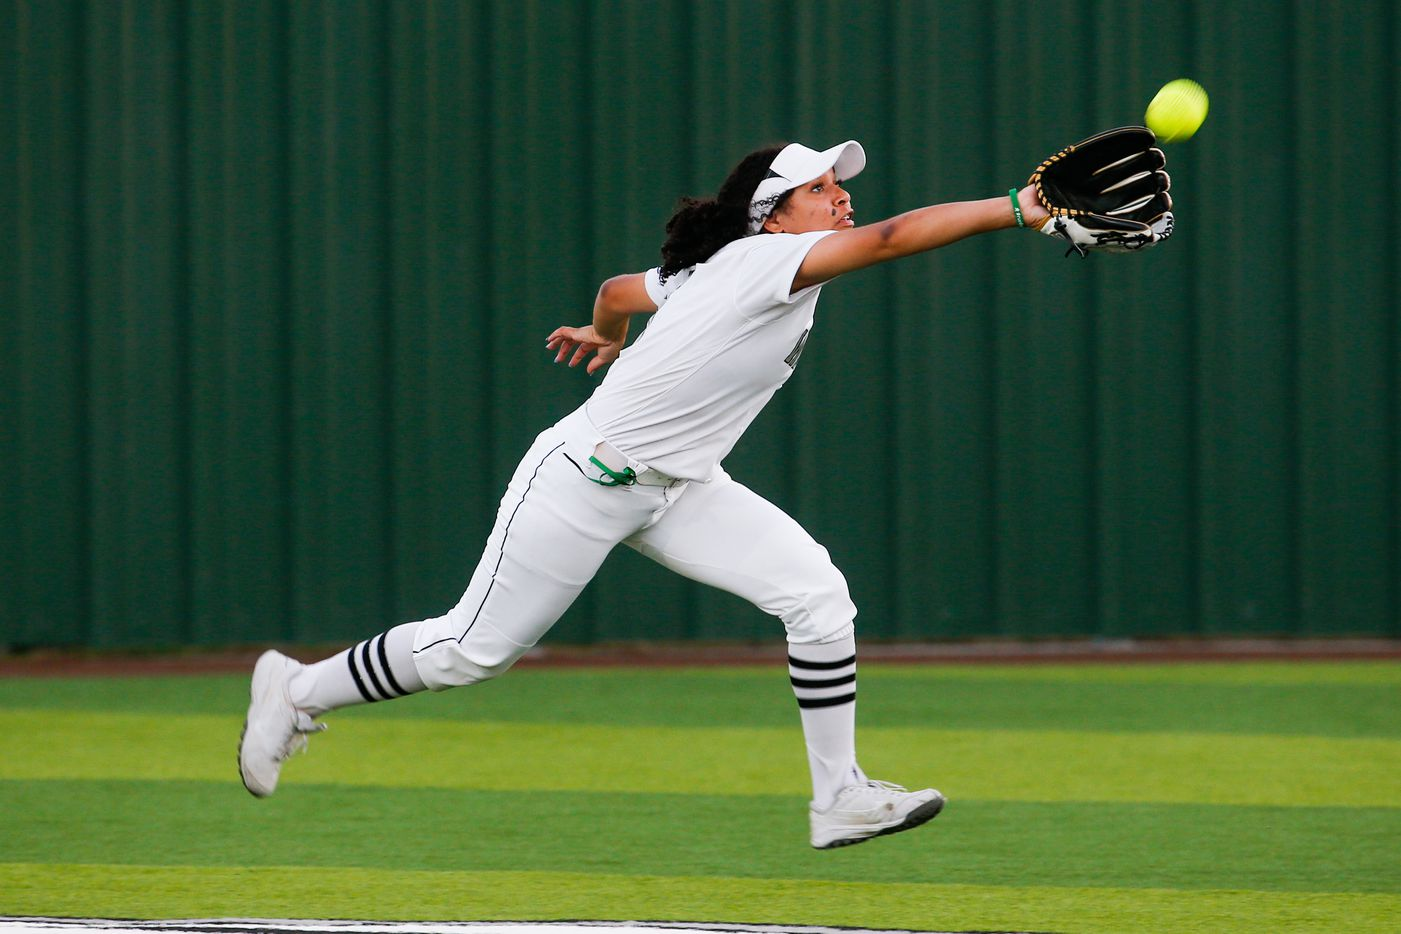 Denton Guyer's Tehya Pitts (8) catches a ball in the outfield from Keller during the second inning of a nondistrict softball game in Denton on Tuesday, March 30, 2021. (Juan Figueroa/ The Dallas Morning News)